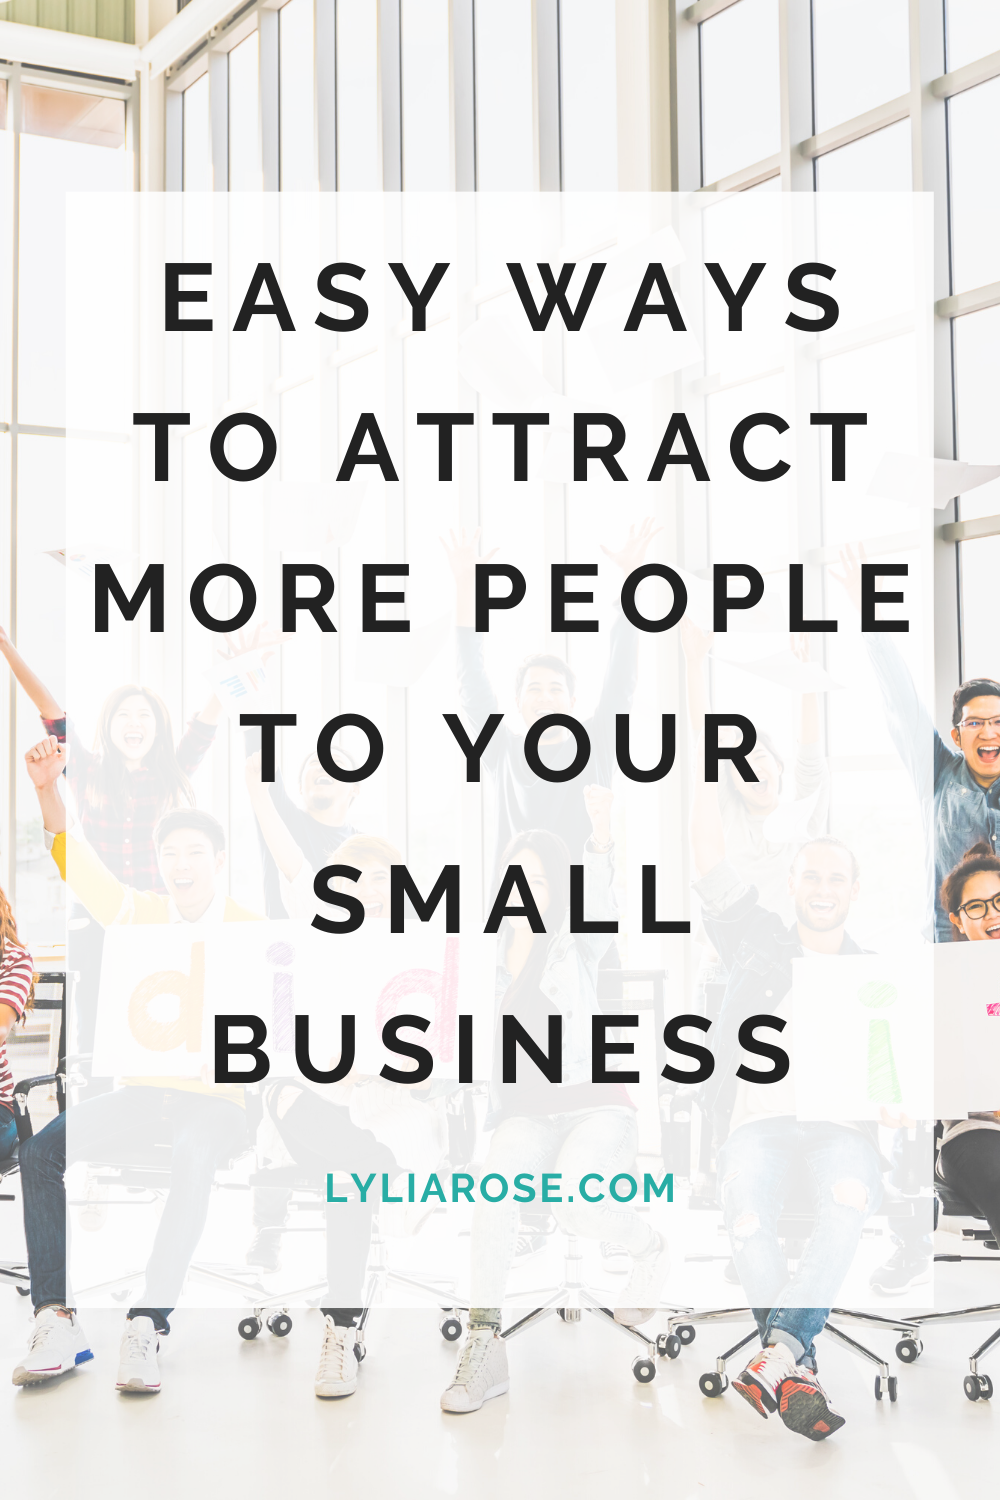 Easy ways to attract more people to your small business (4)